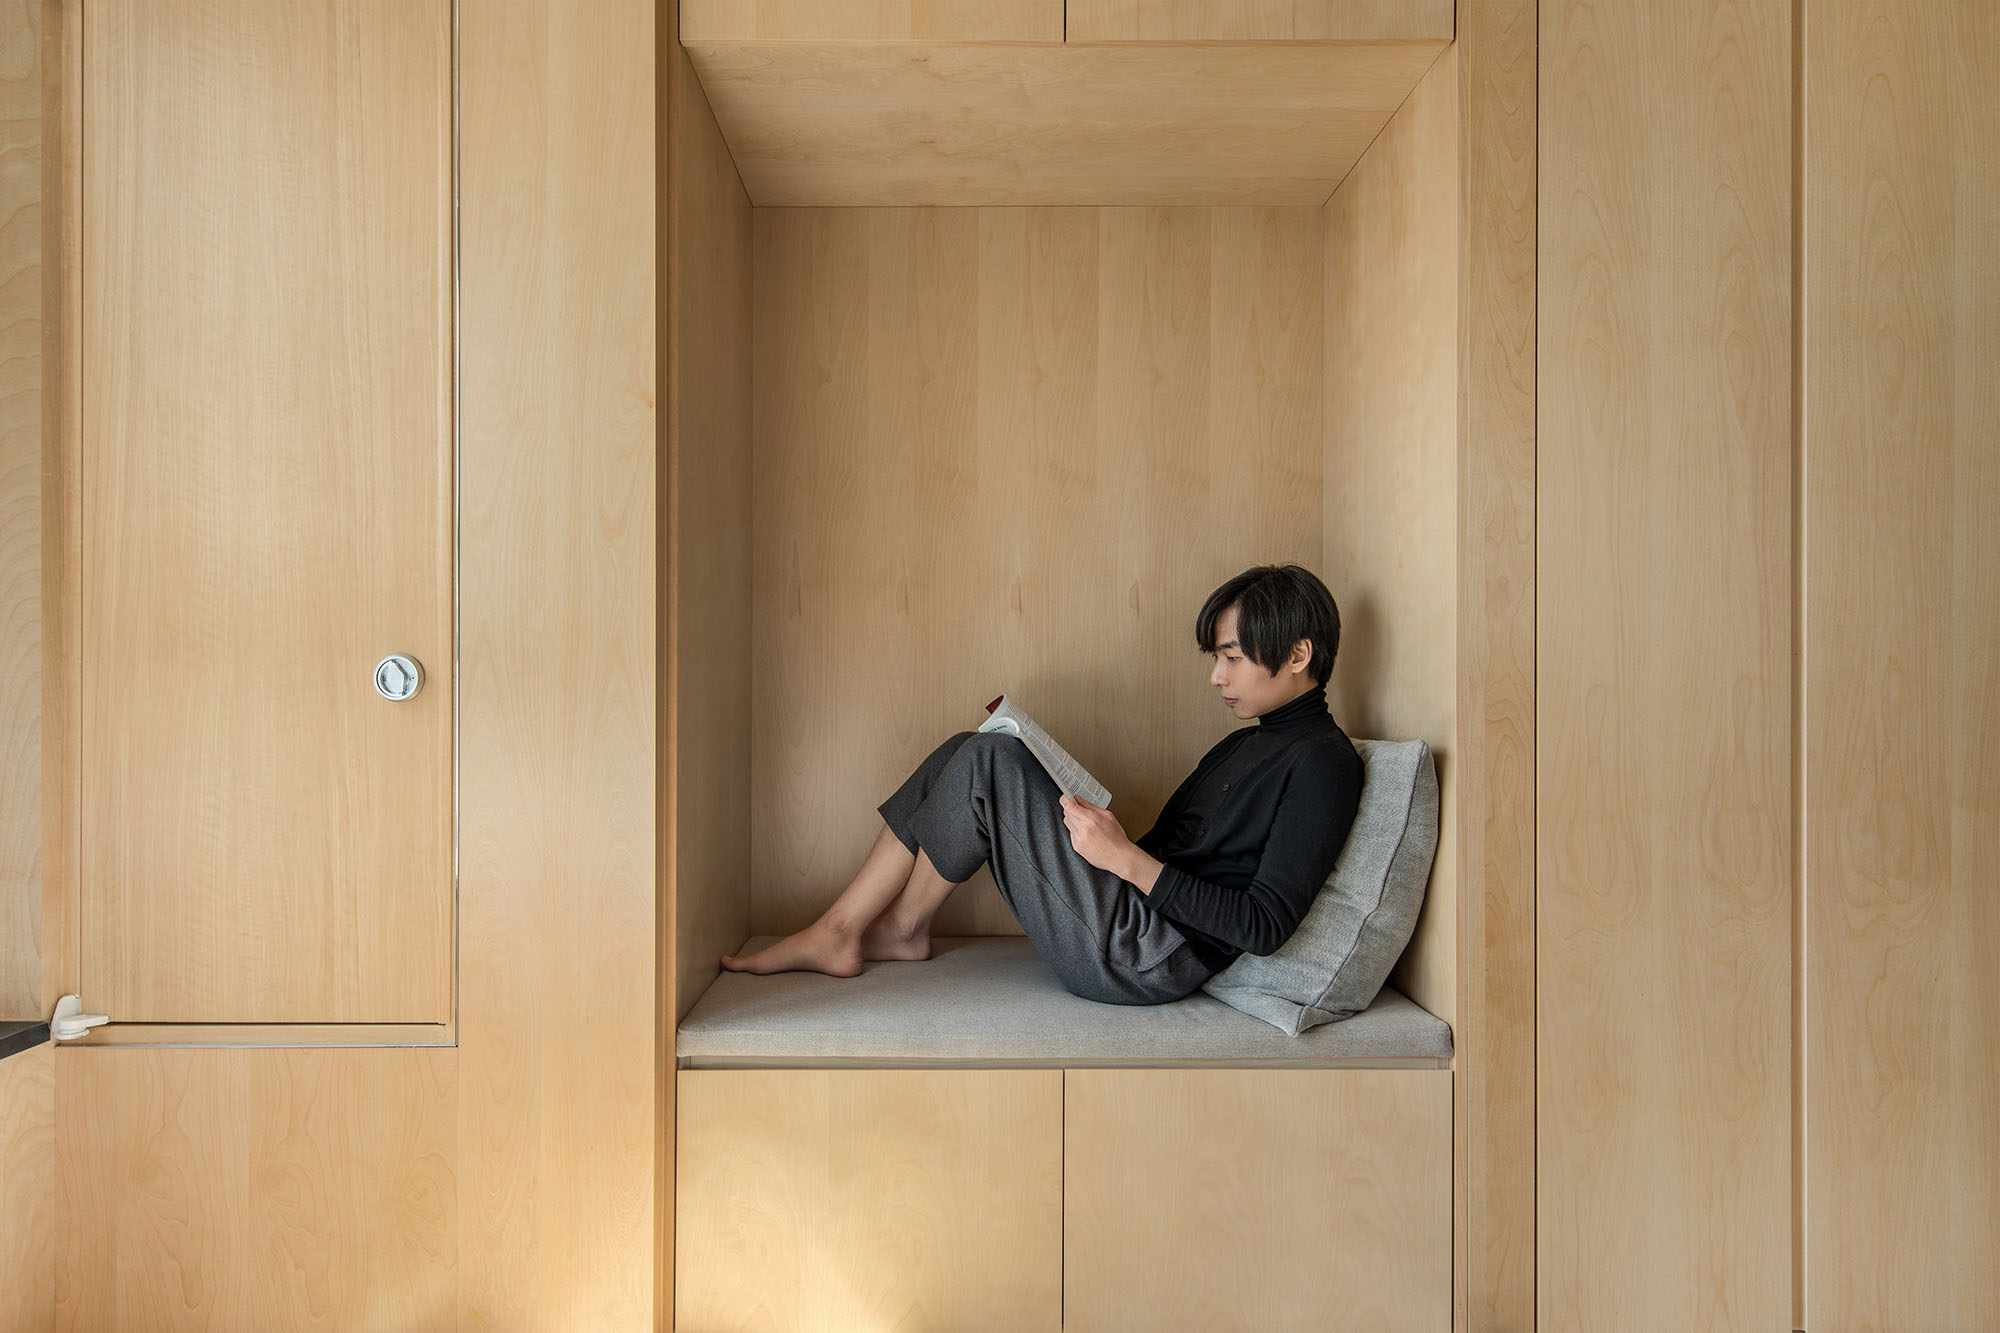 LIFE micro-apartments coliving Ian Lee reading nook